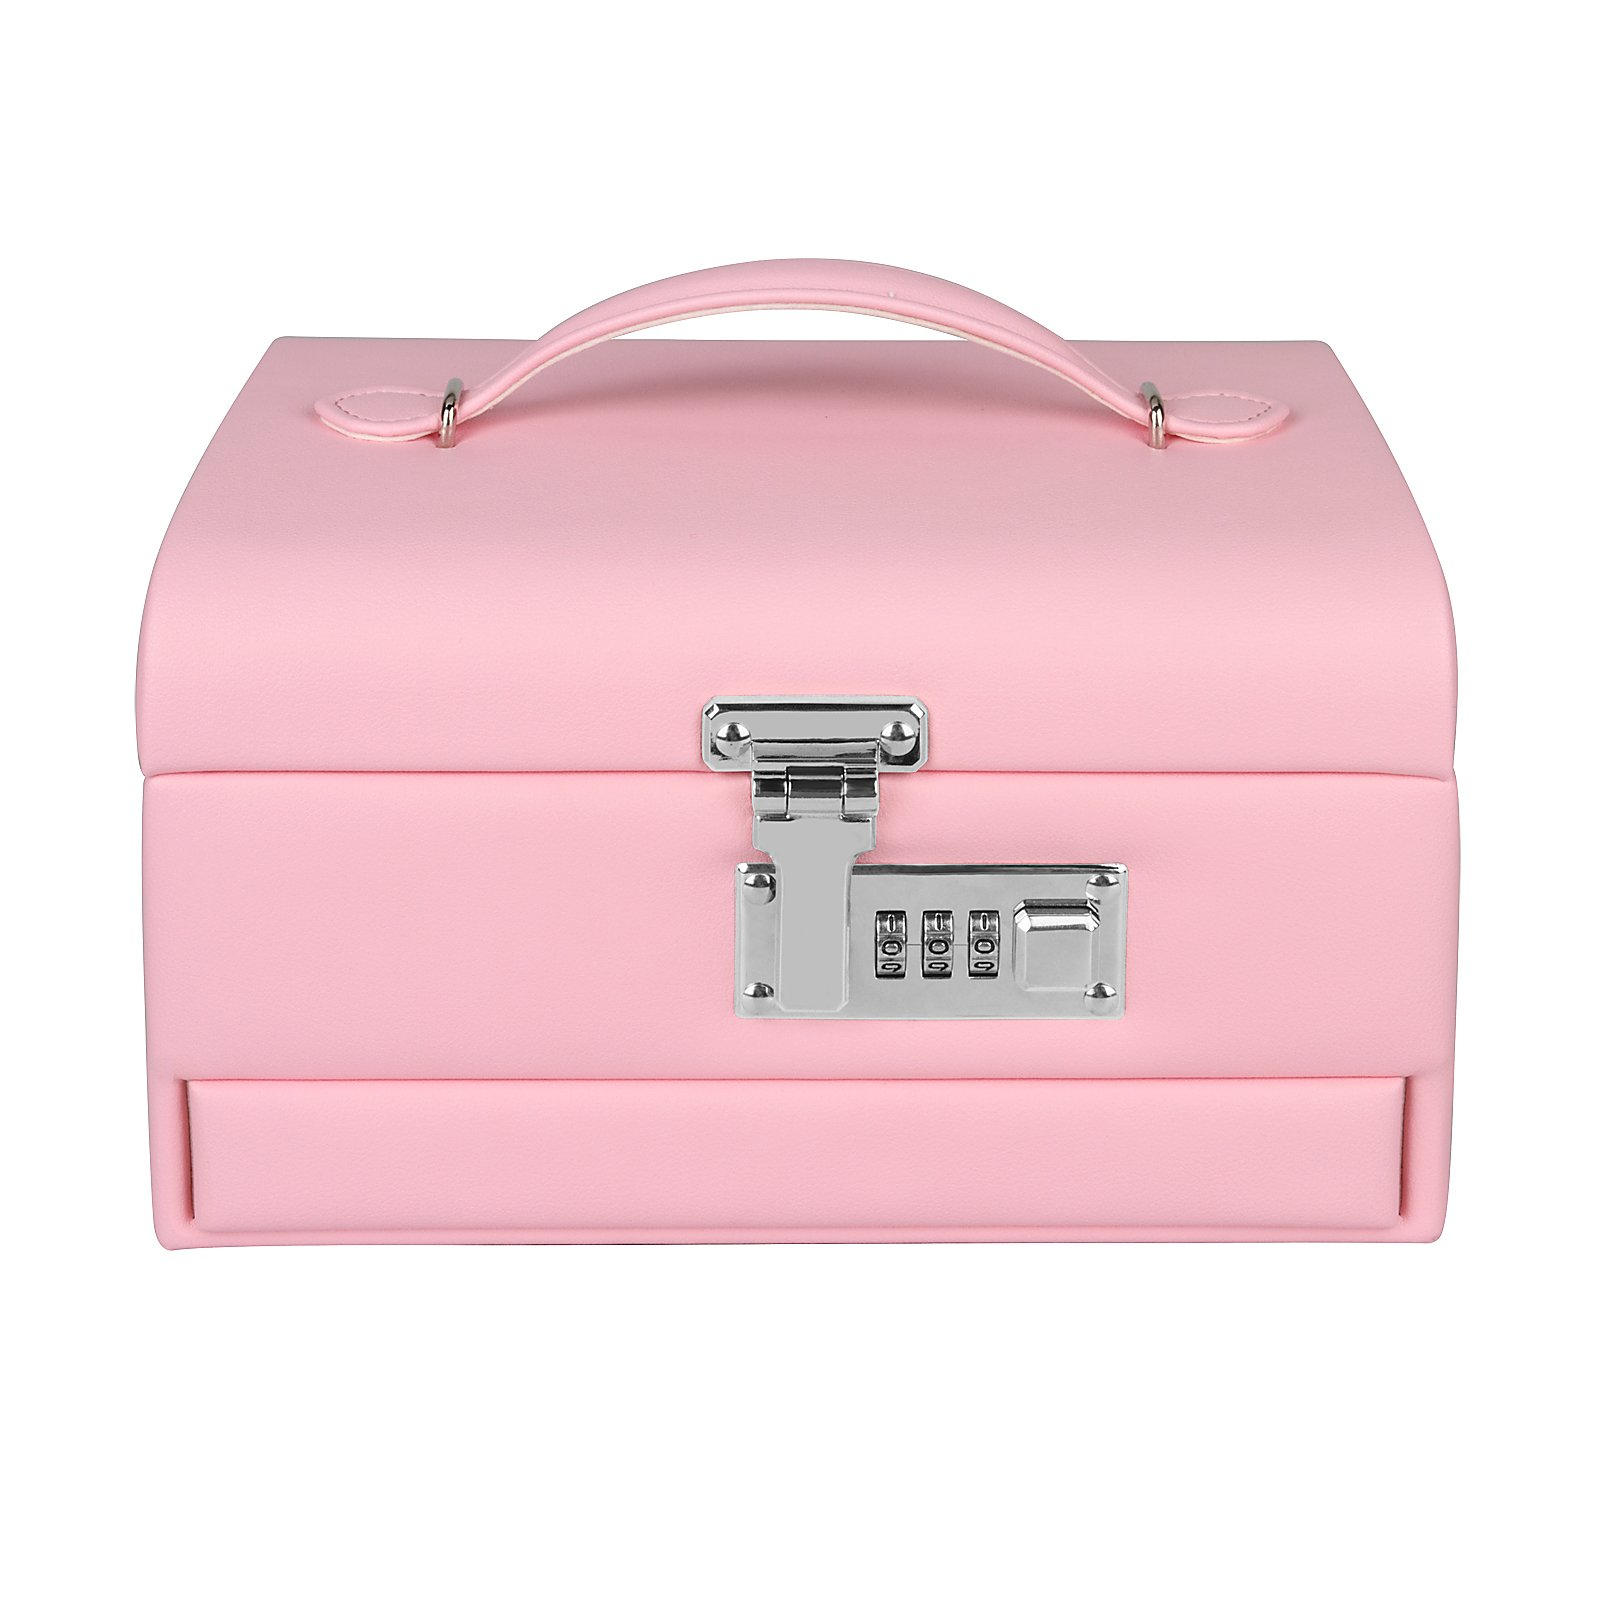 Combination Lock Jewelry Box Organizer for Girls Mirrored Leather Three-Layer 11 Separate Compartment Secret Storage Case, Pink